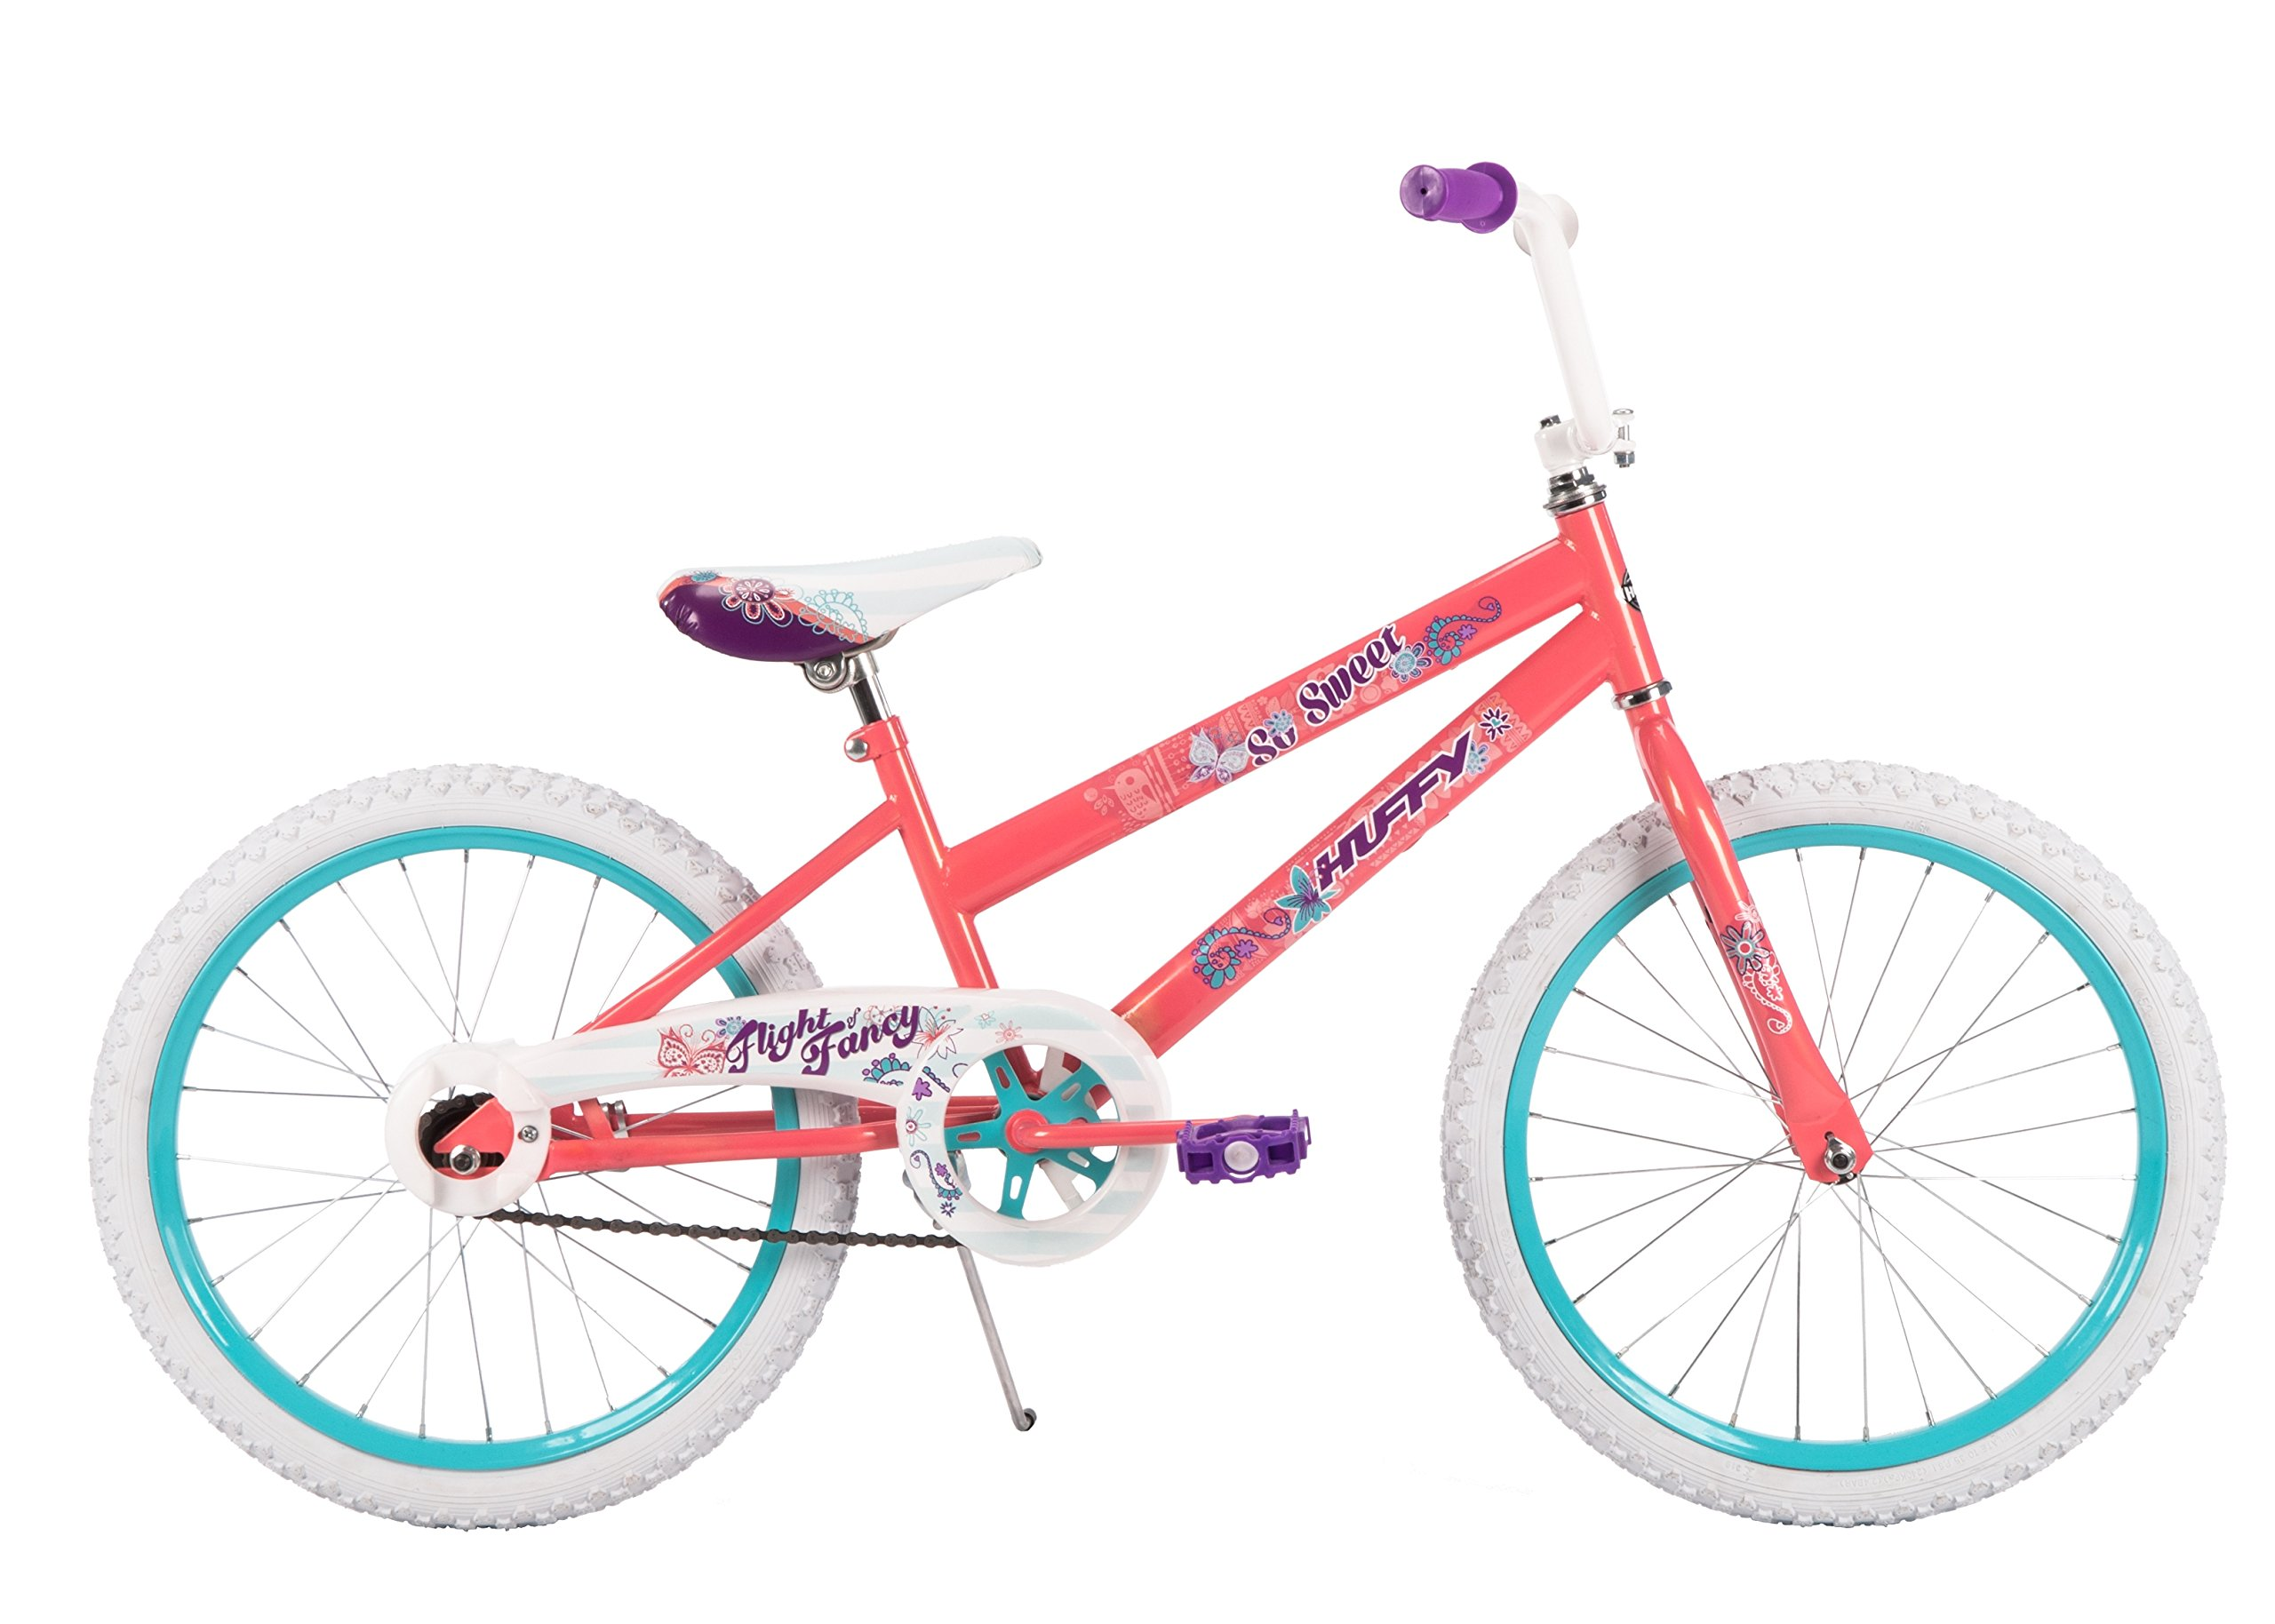 20'' Huffy So Sweet Girls' Bike, Ages 5-9, Height 44-56''